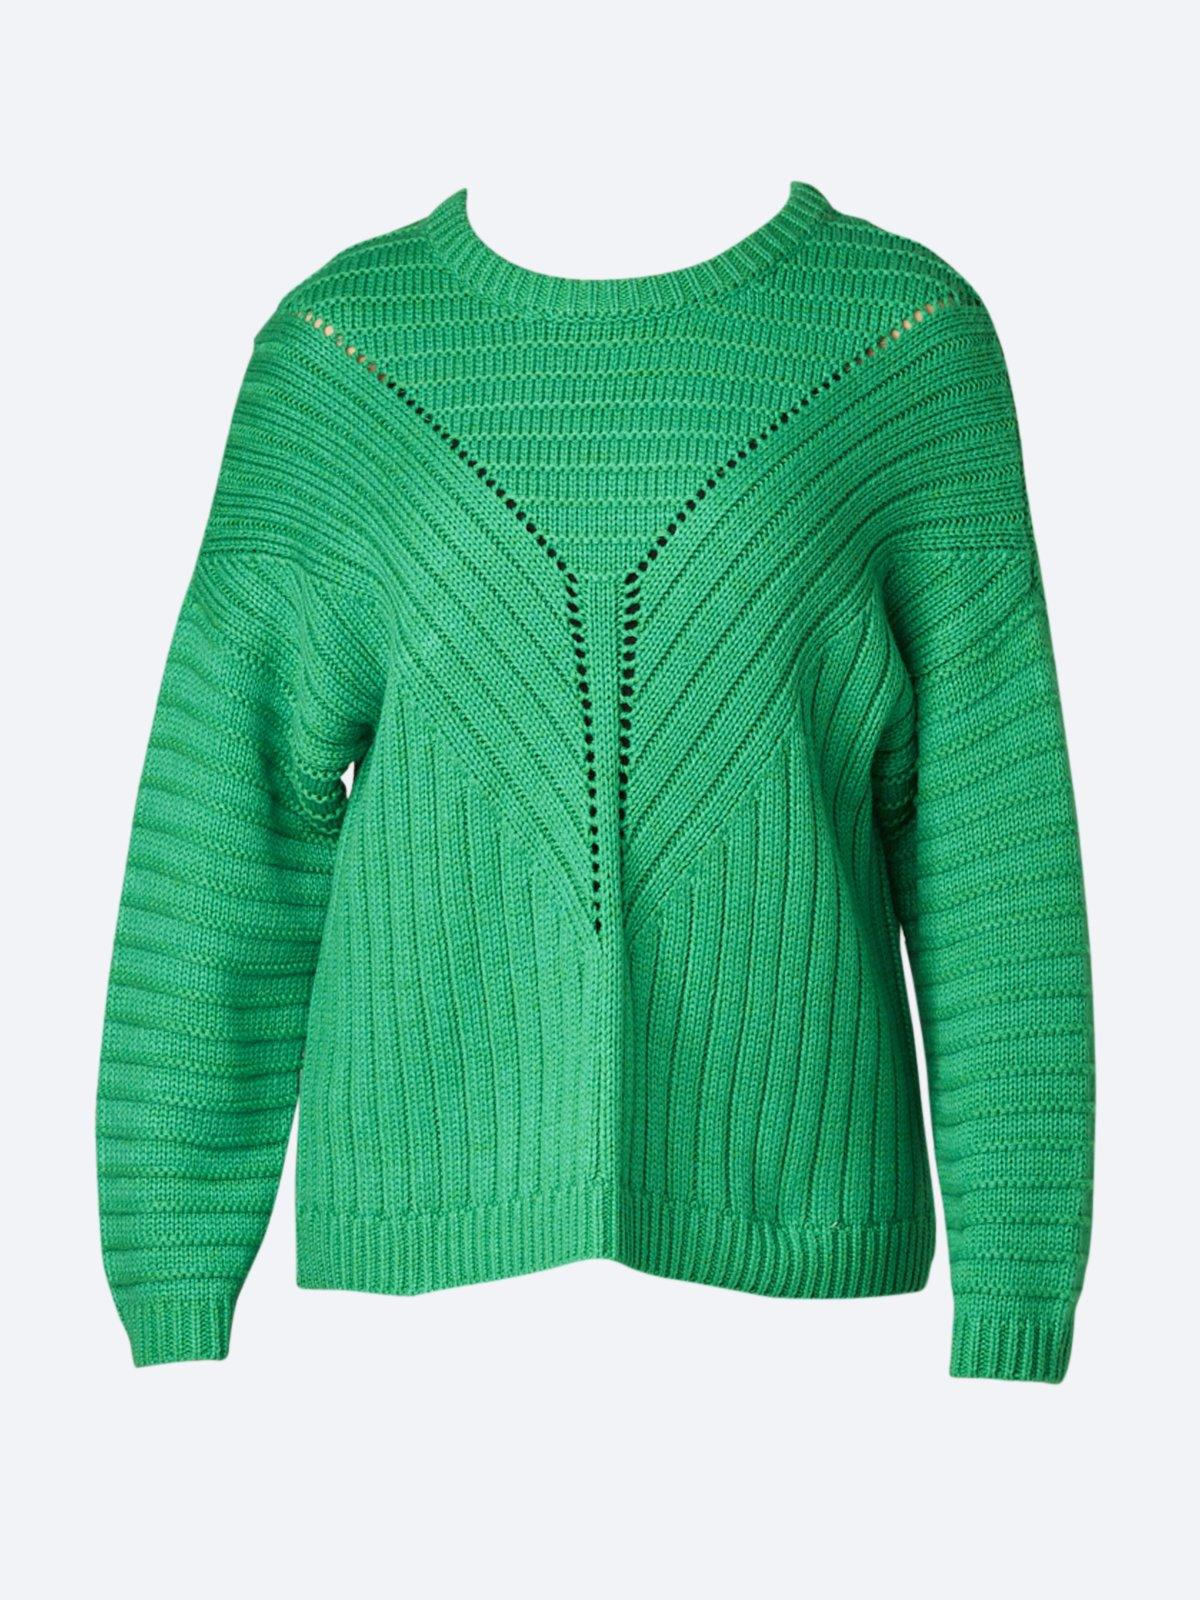 ELM EMERALD KNIT